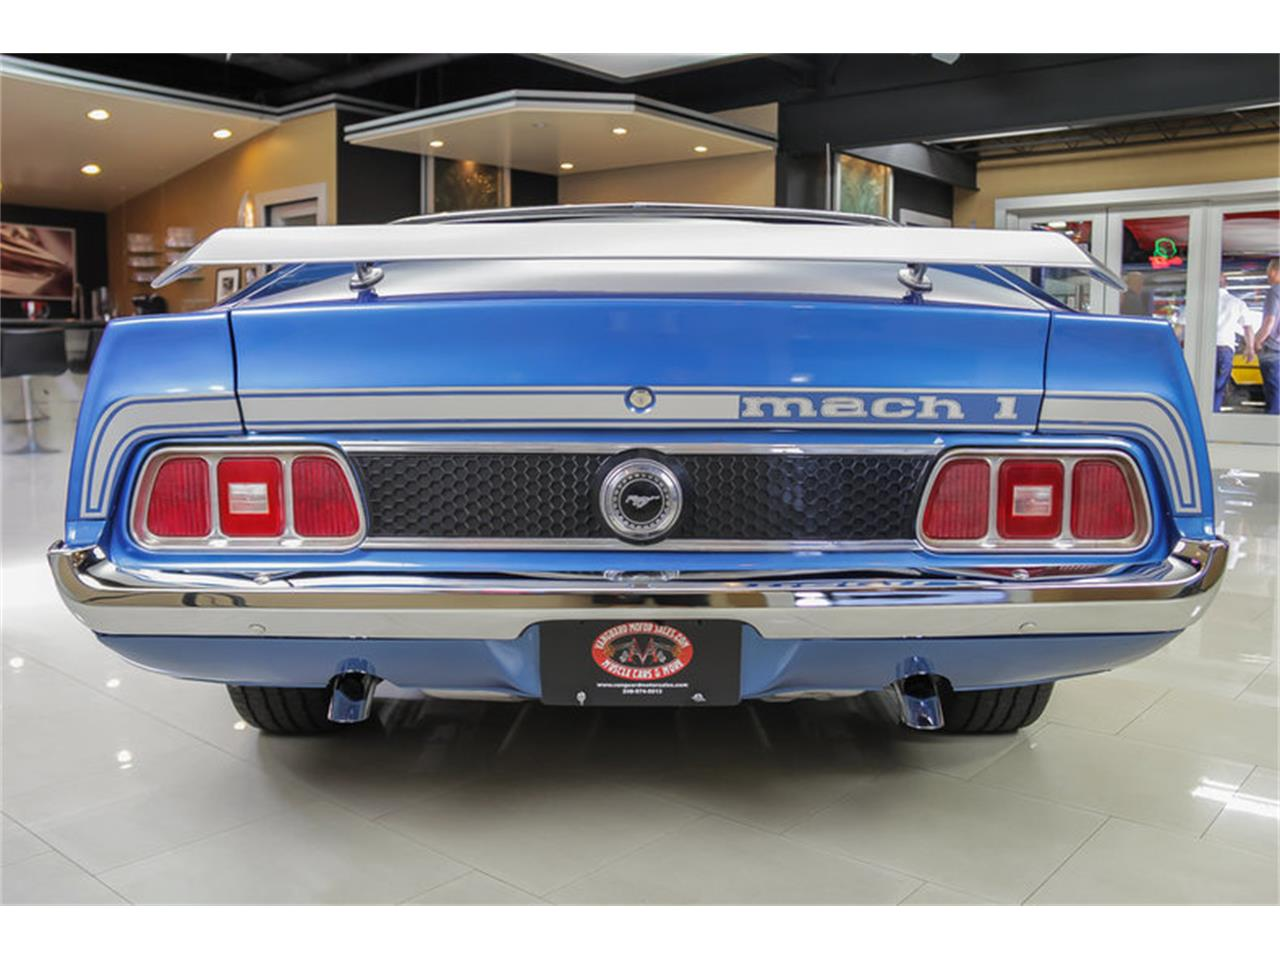 Large Picture of Classic '73 Ford Mustang Mach 1 Q Code located in Michigan - $34,900.00 Offered by Vanguard Motor Sales - JDX1